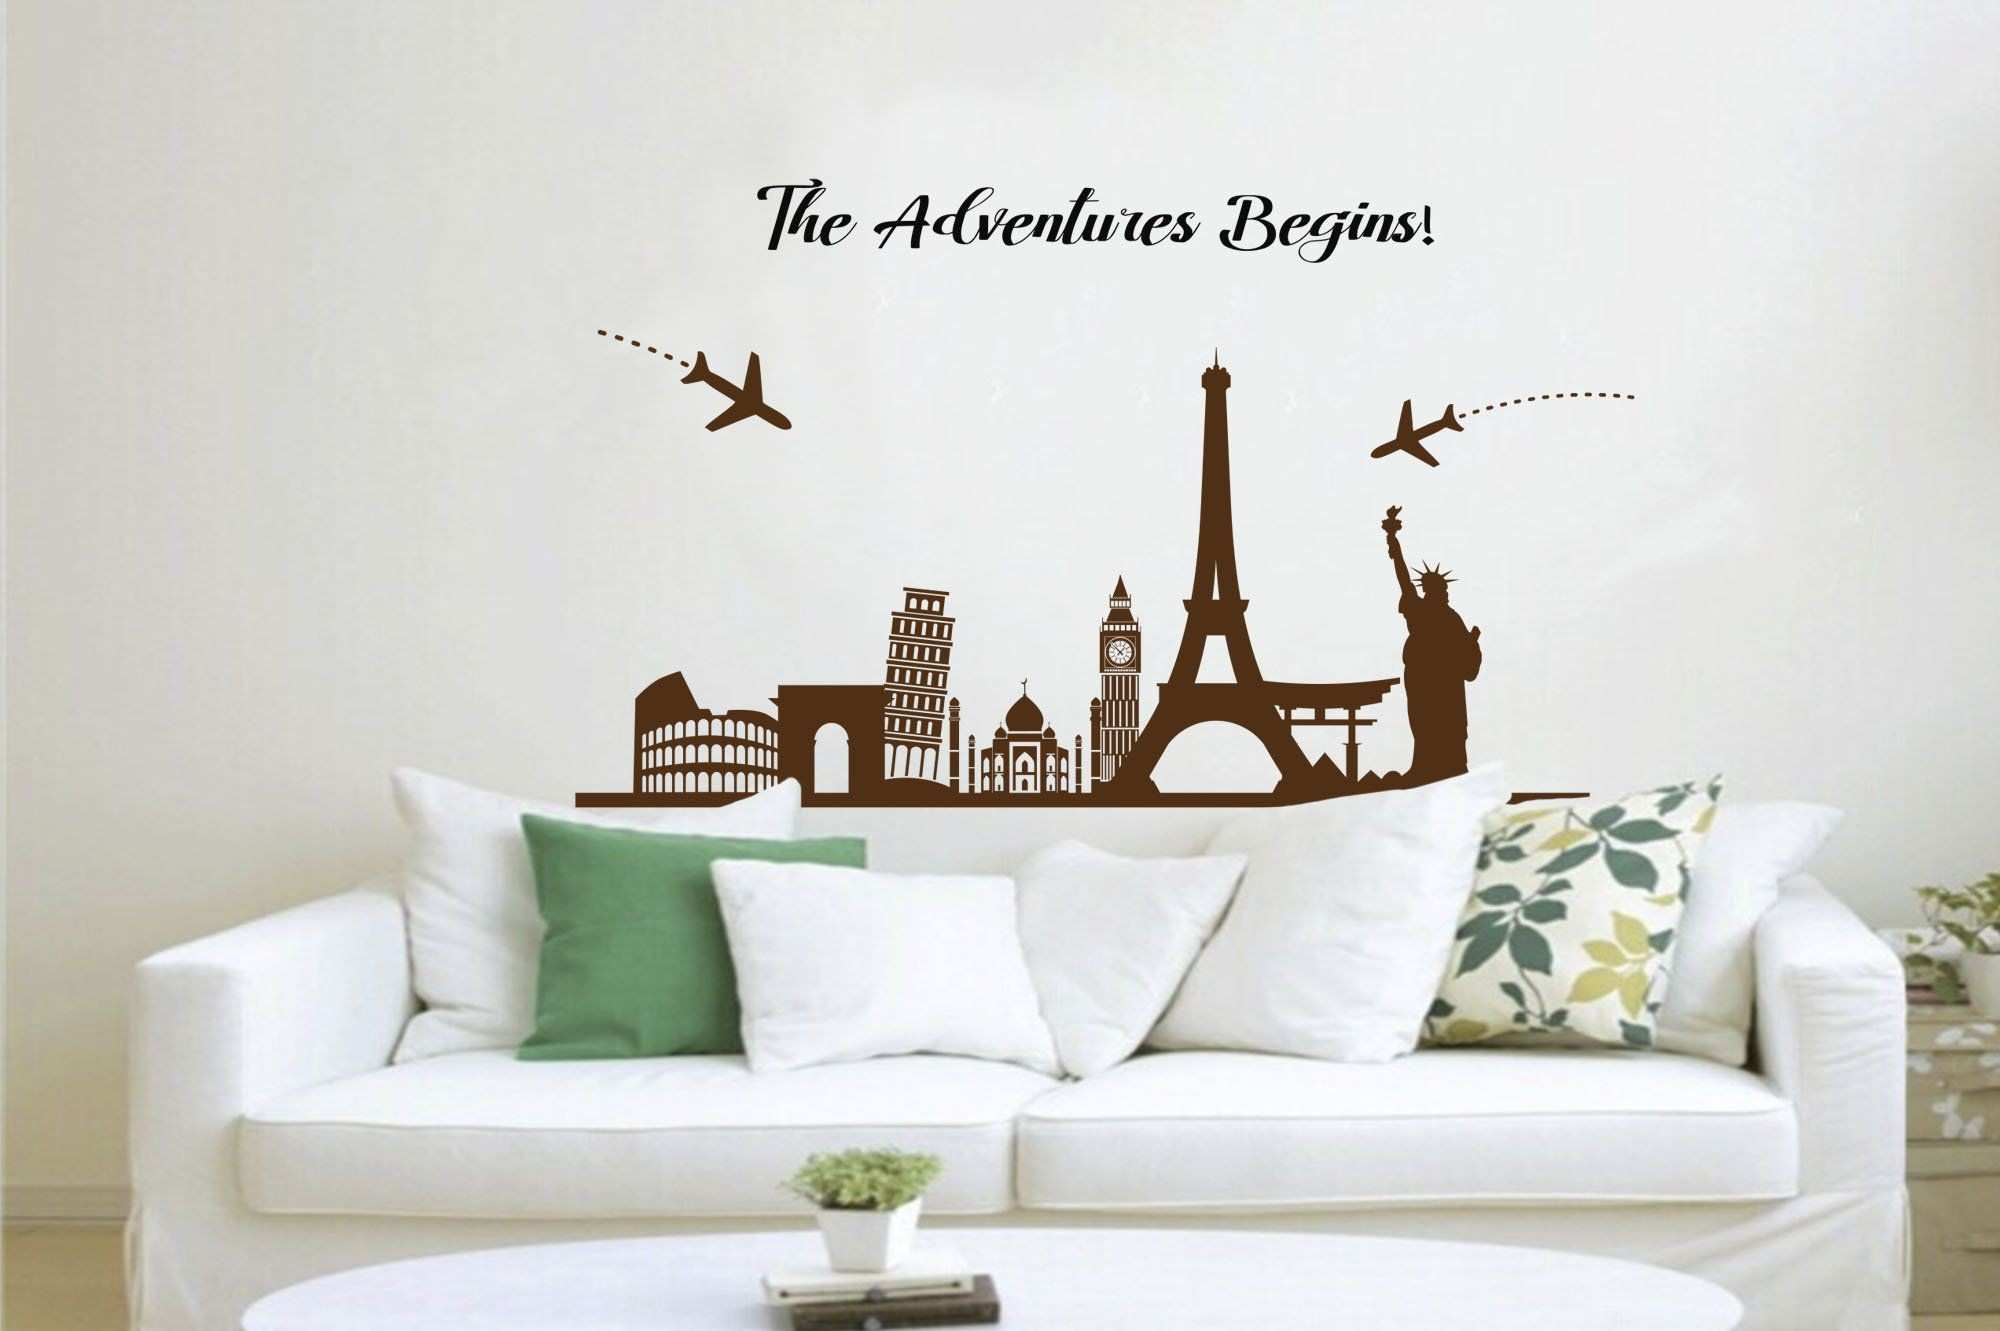 Skyline Decal Fice Wall Decal Cityscape Wall Decal Headboard Wall